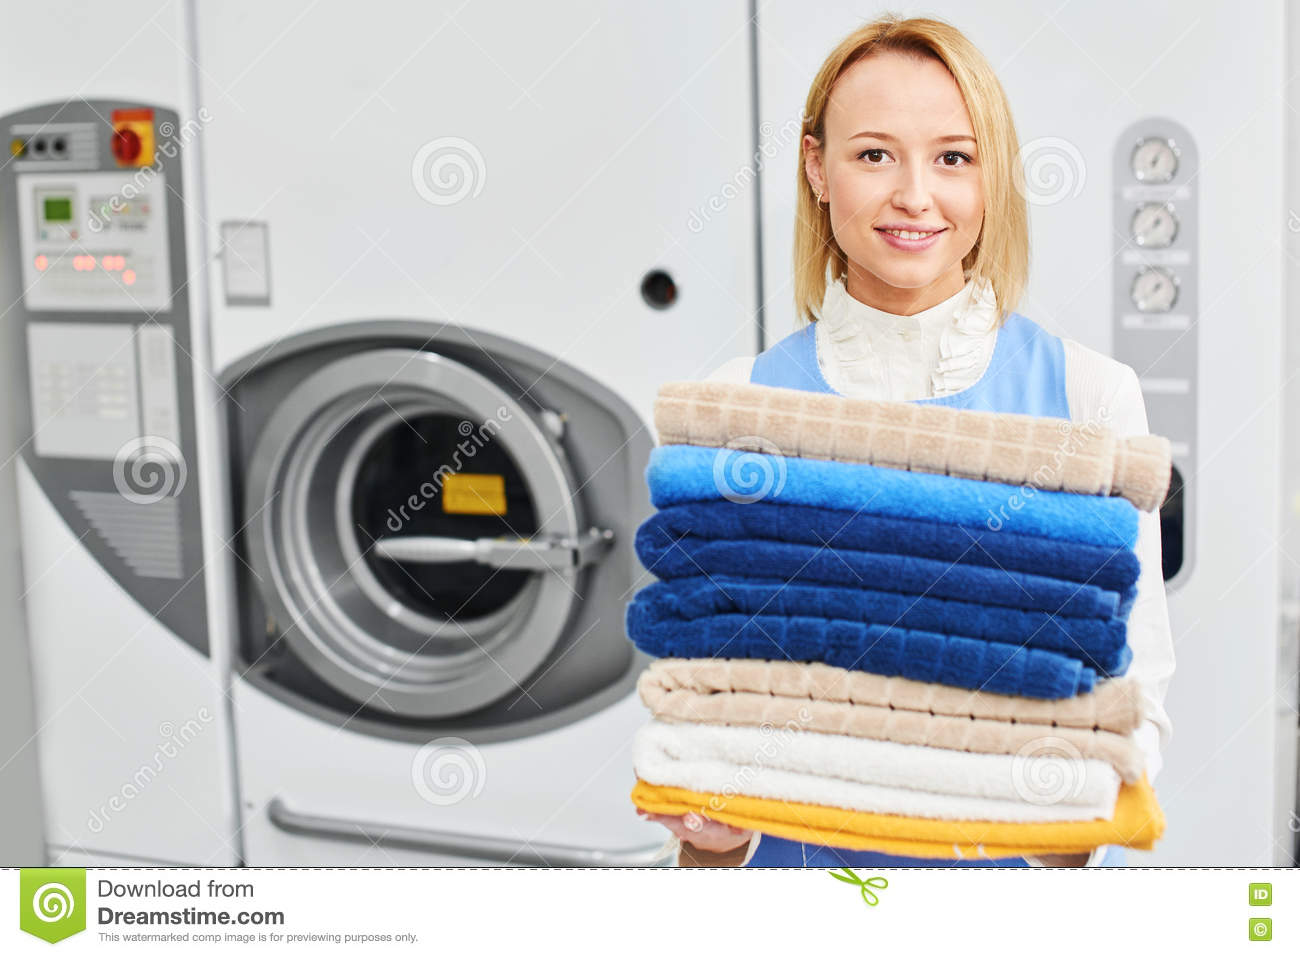 how to start a towel service